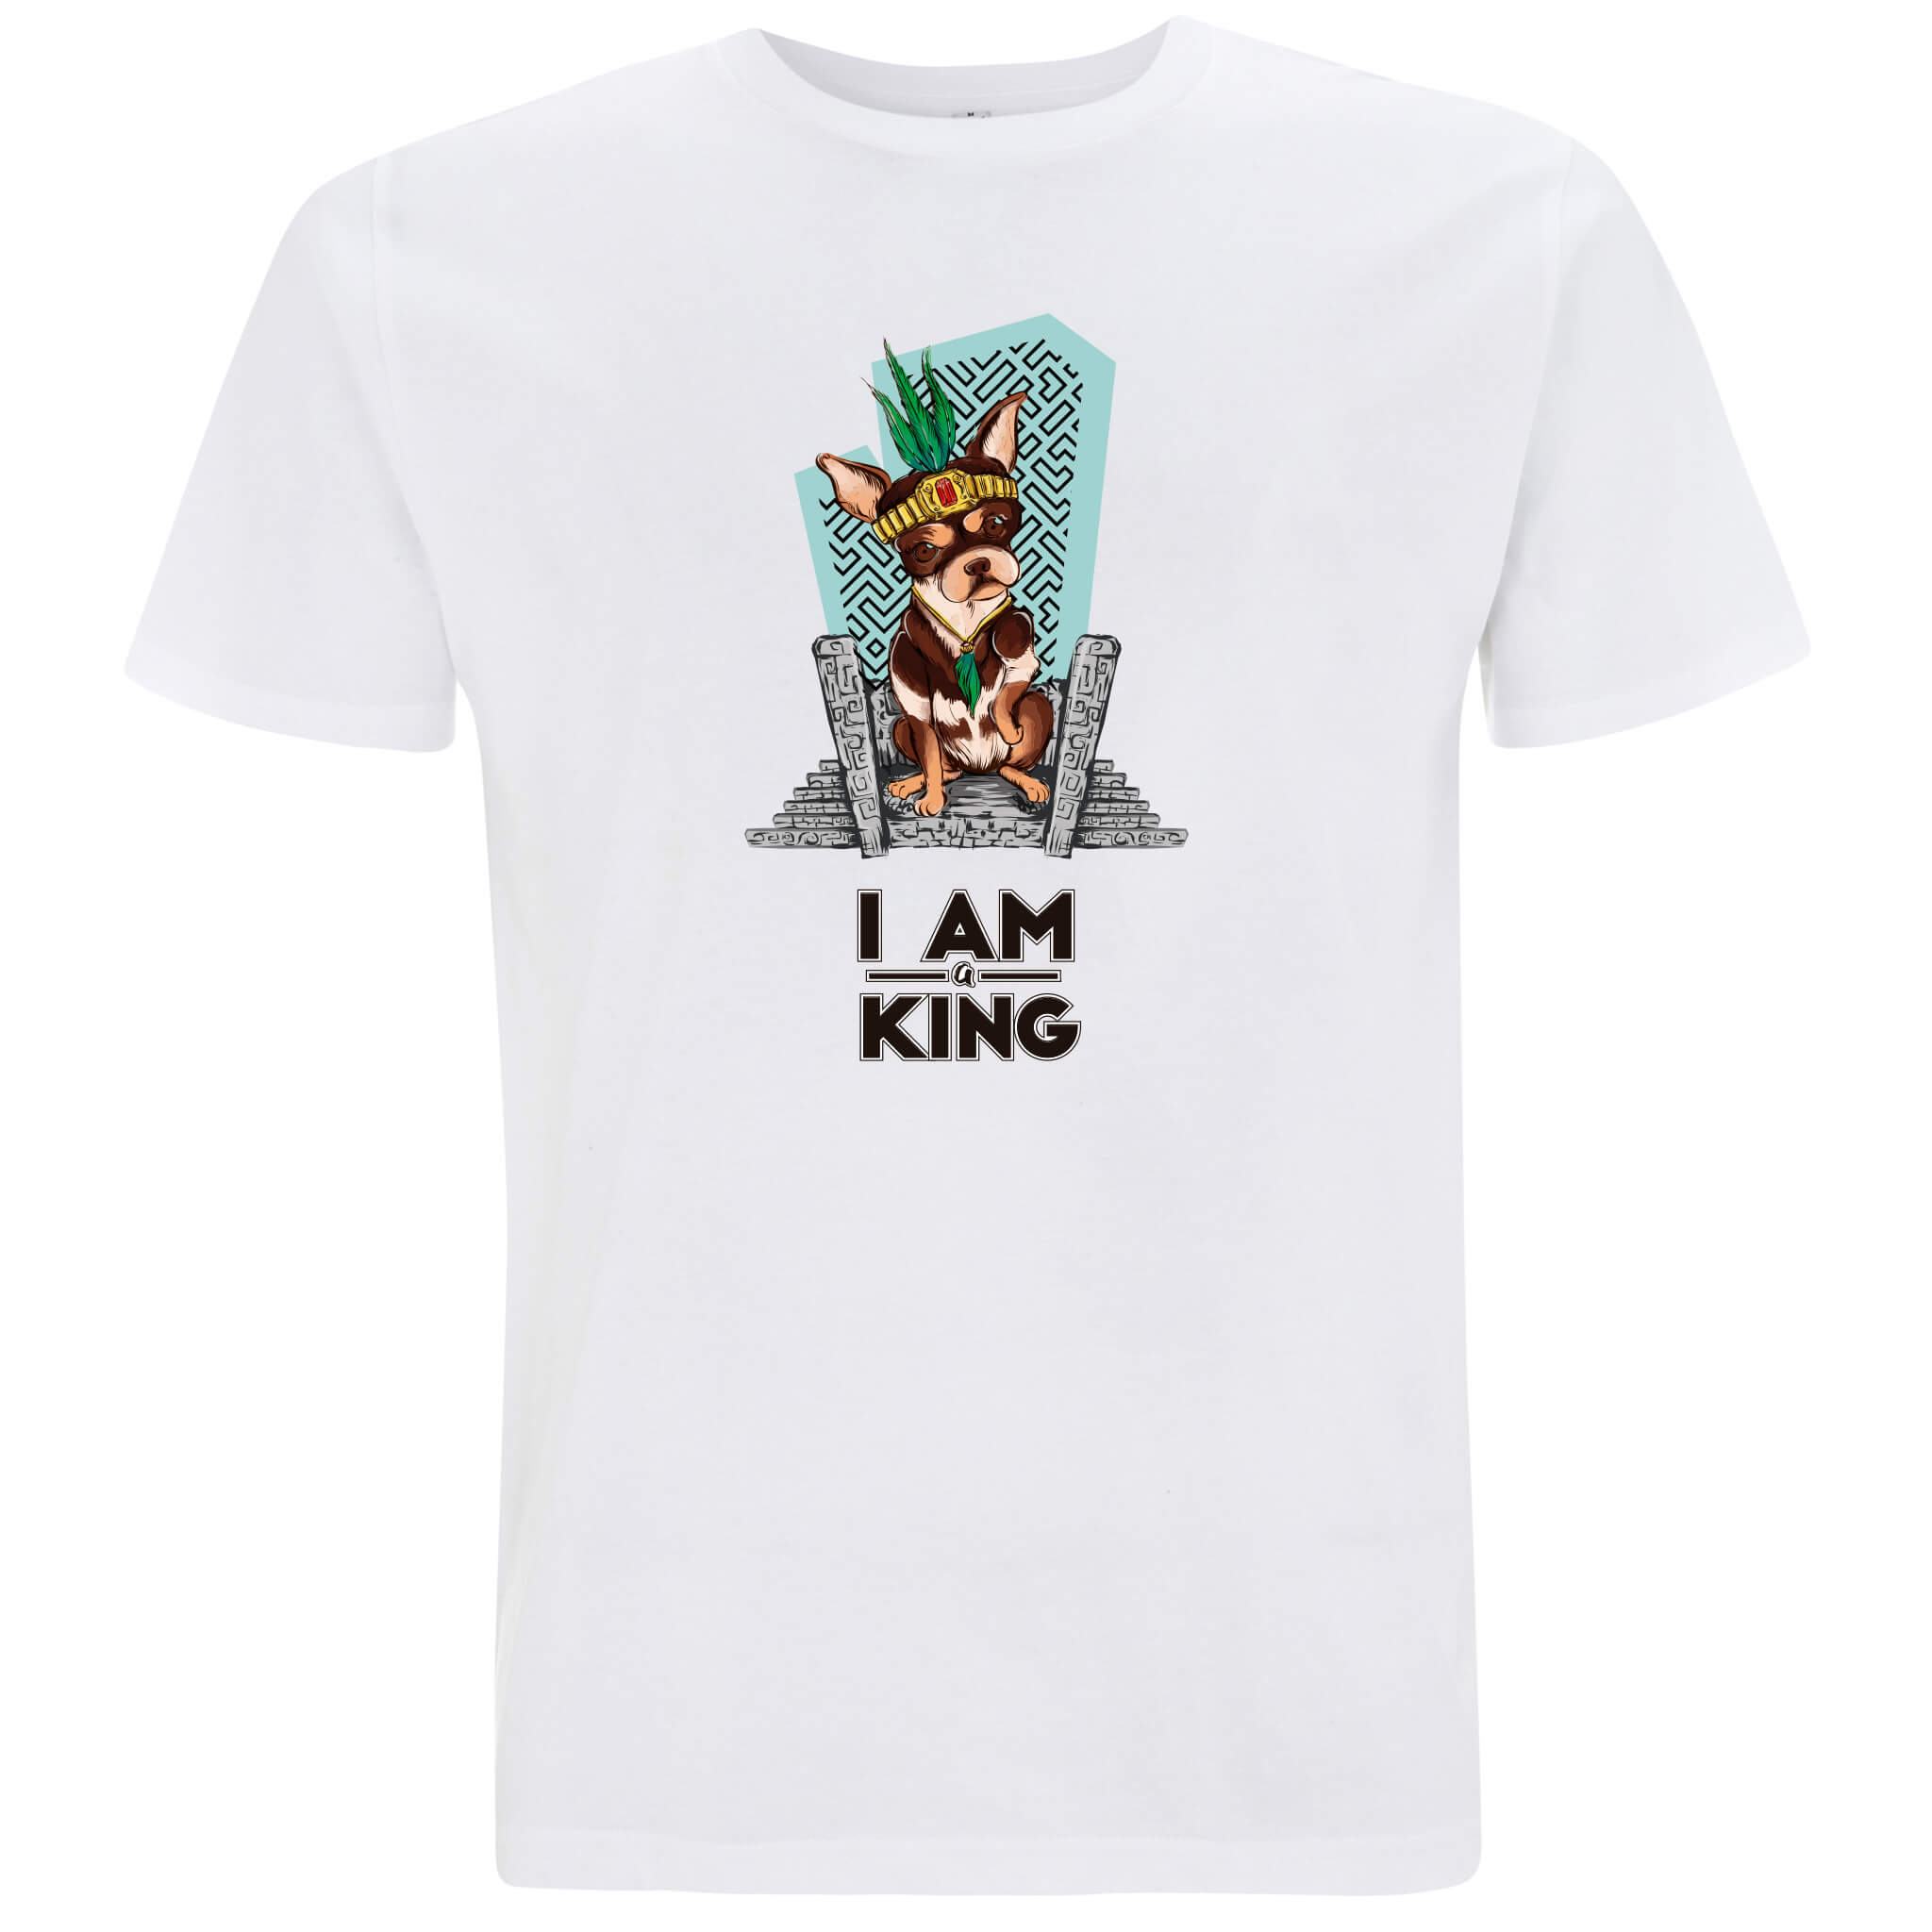 Chihuahua - T-shirt Uomo - T-Shirt by Fol The Brand